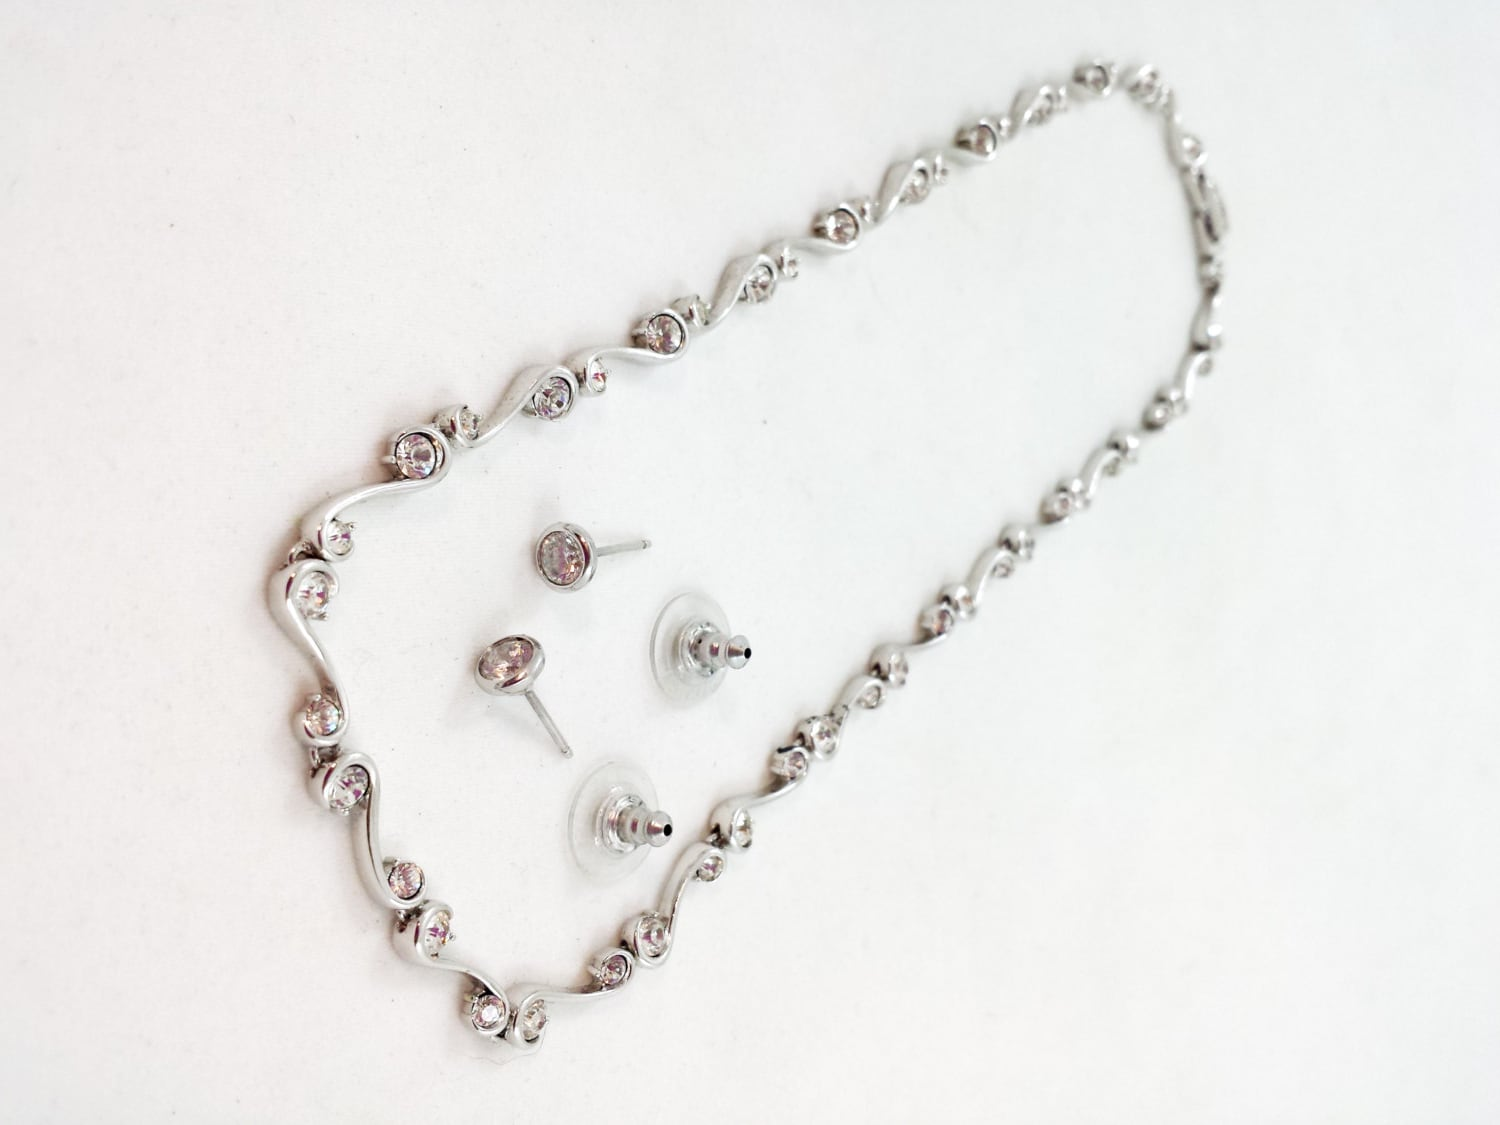 e613a63d8b45e NADRI Necklace Signed SWAROVSKI Crystals Choker Sterling Silver Earrings  925 WEDDING Set